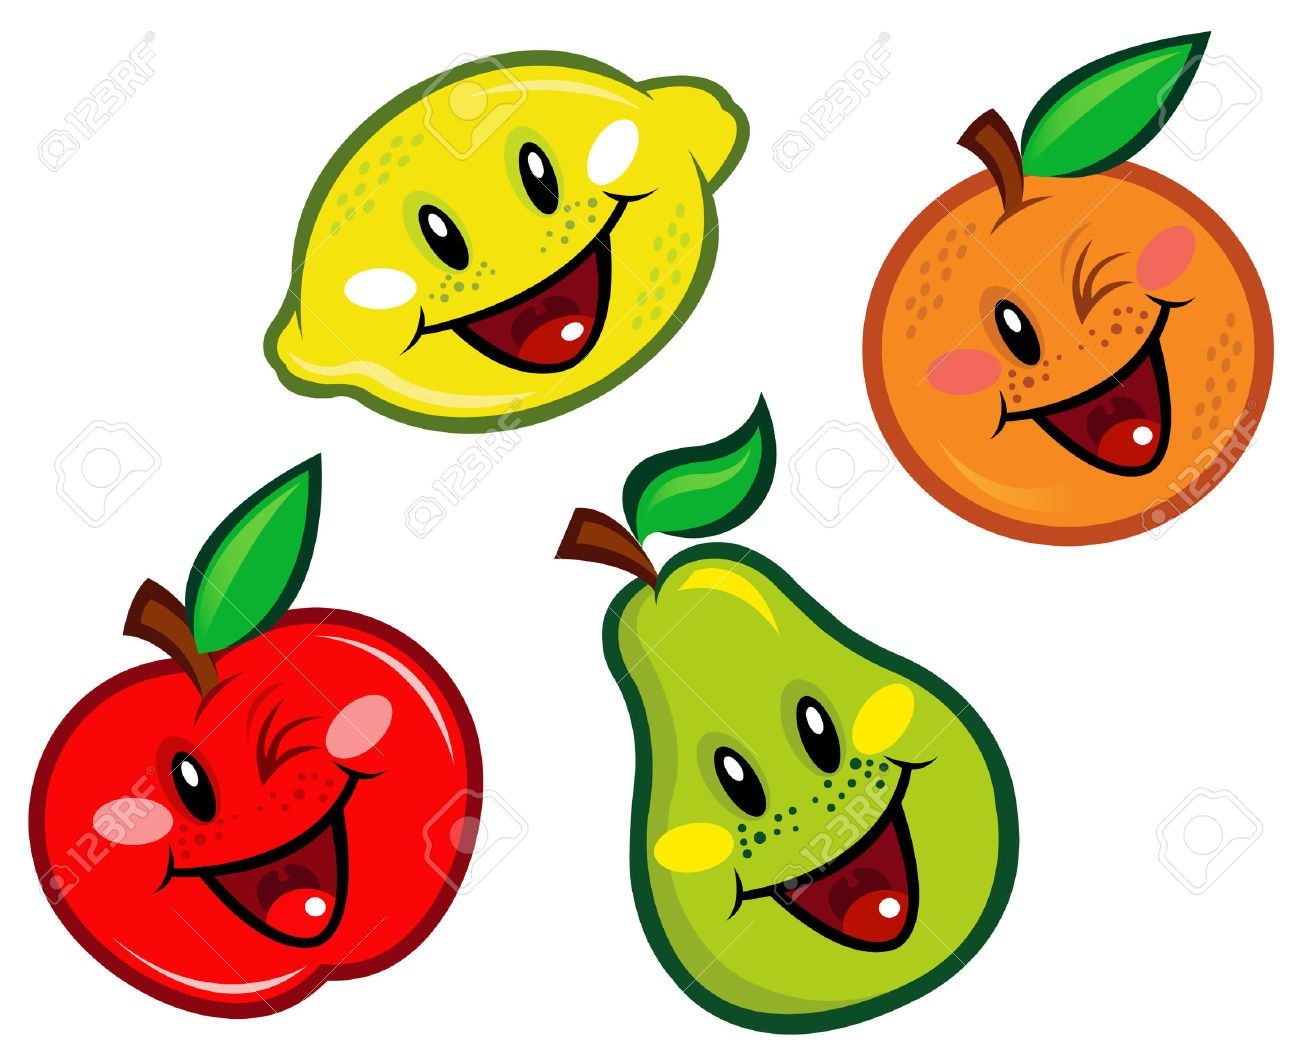 8777680-Happy-Fruits-Characters--Stock-Vector-fruits ...